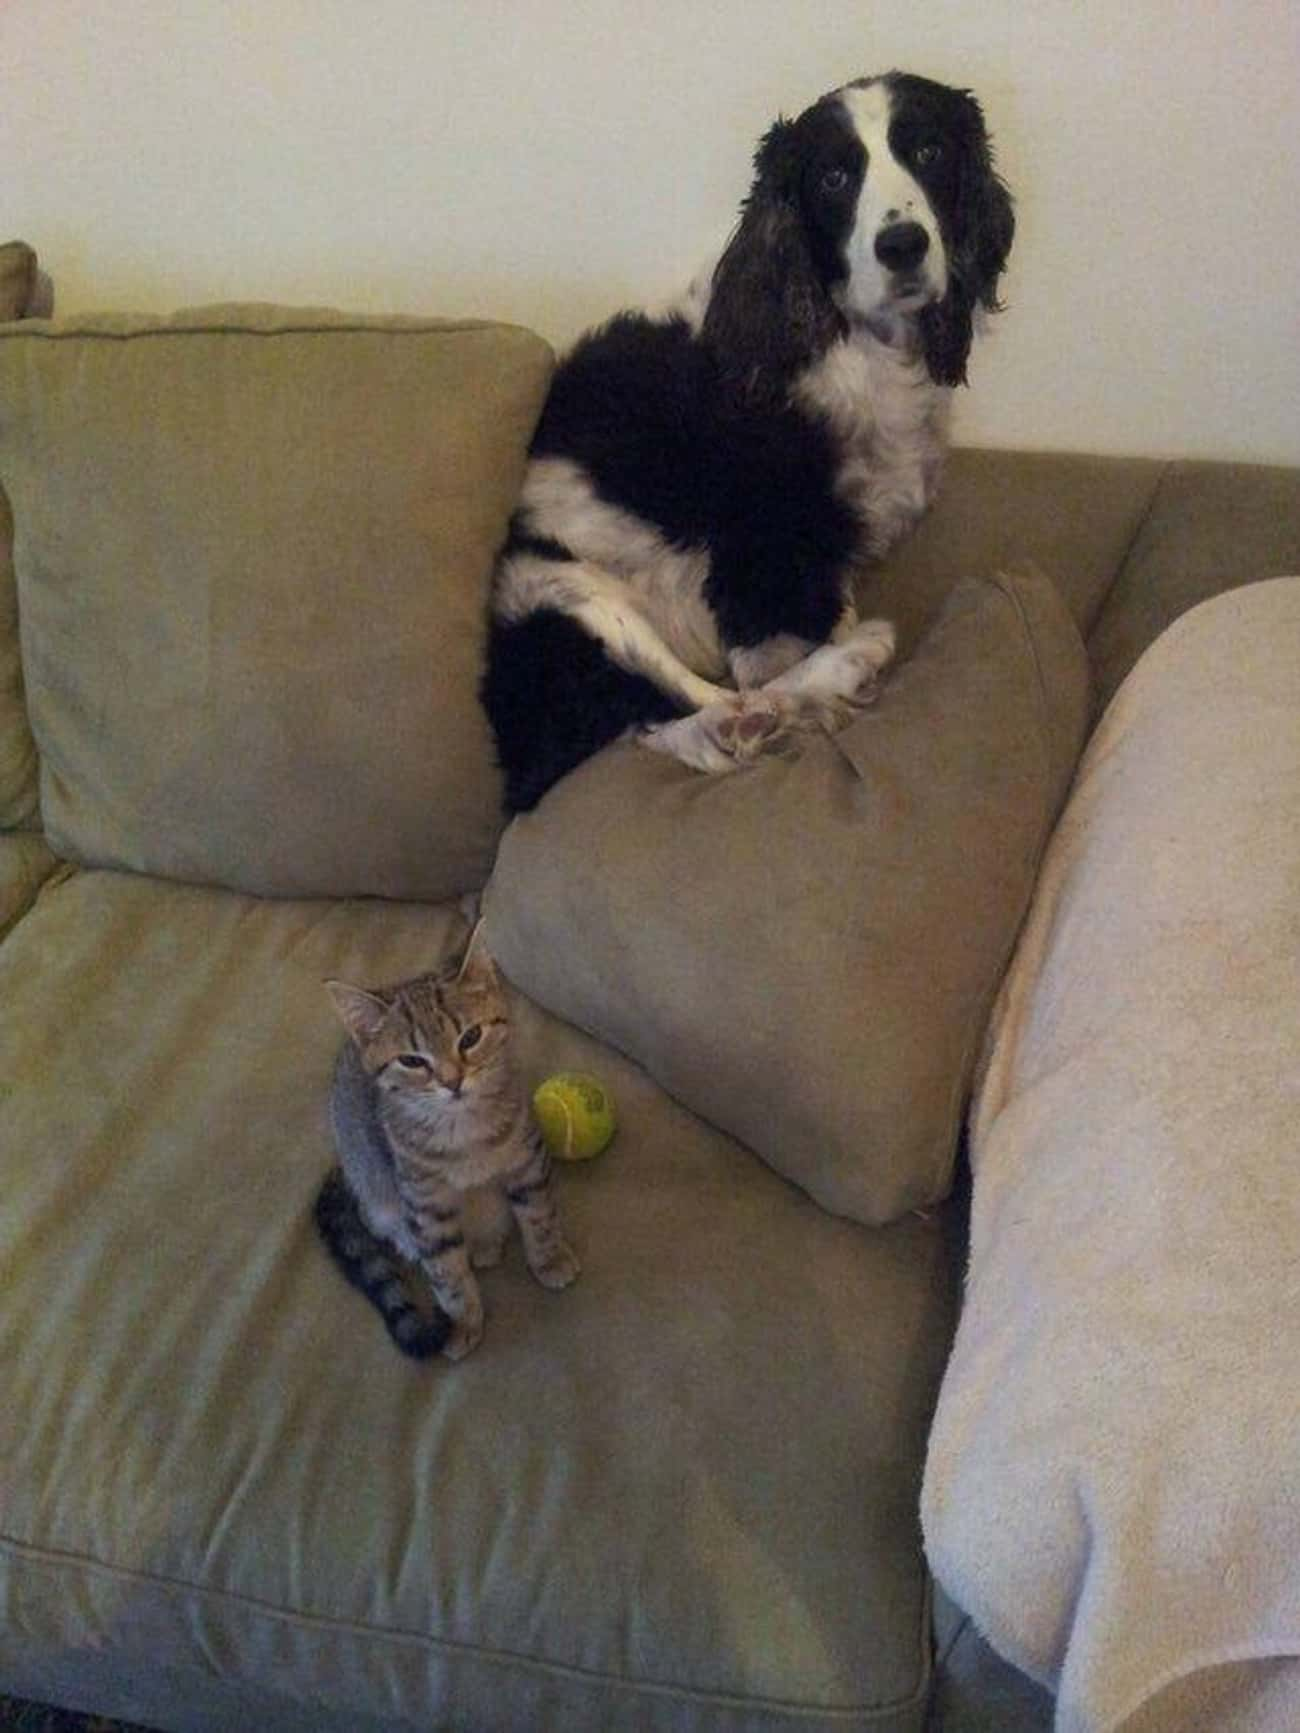 No Remorse About Taking That B is listed (or ranked) 3 on the list 15 Dogs Who Are Terrified of Cats